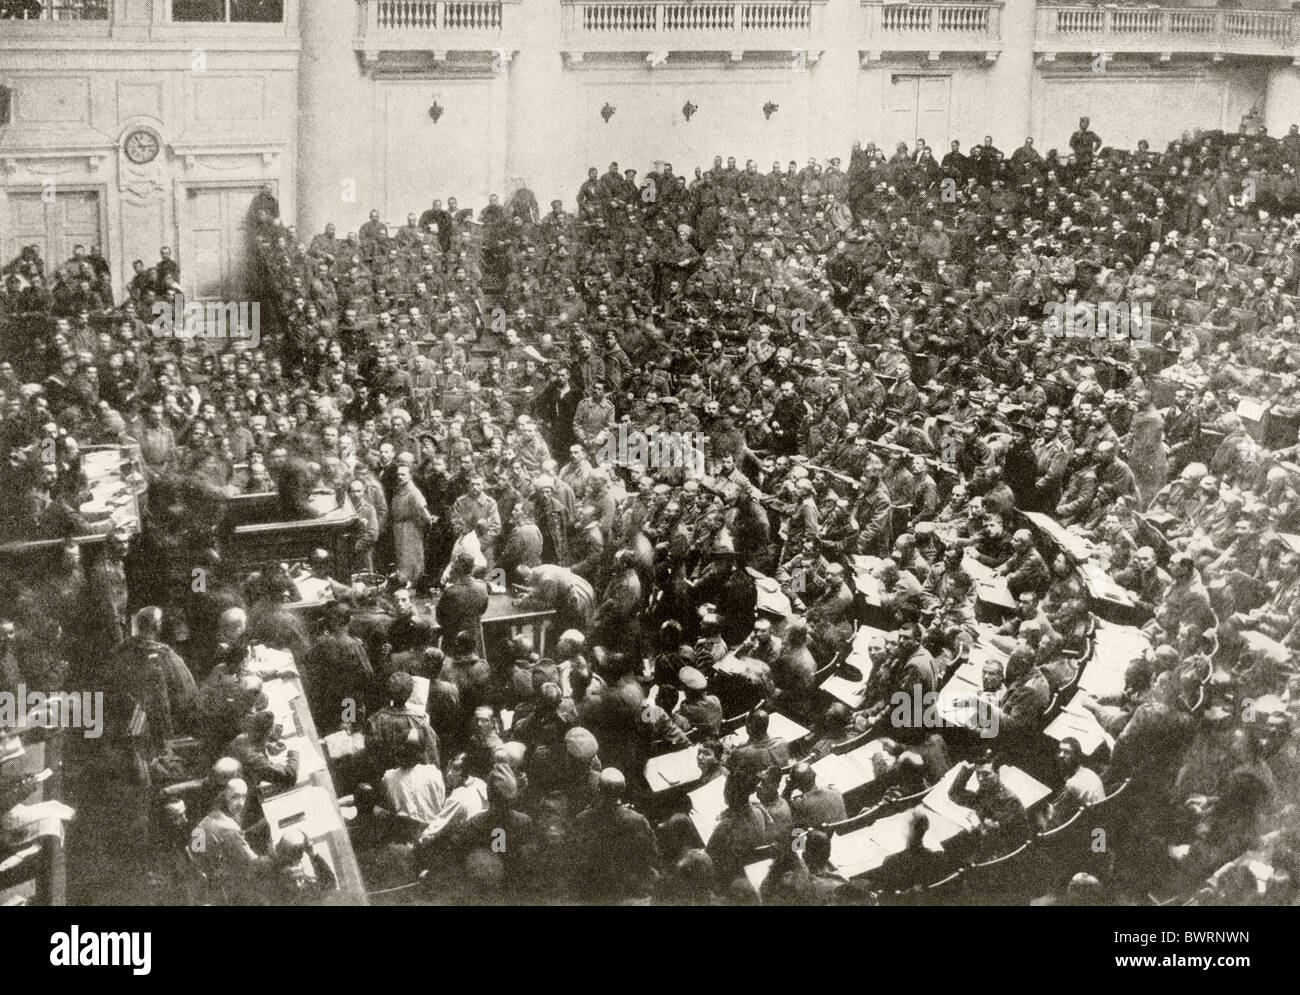 The Russian Duma in possession of the Committee of Workers and Soldiers deputies after the Revolution of 1917. - Stock Image